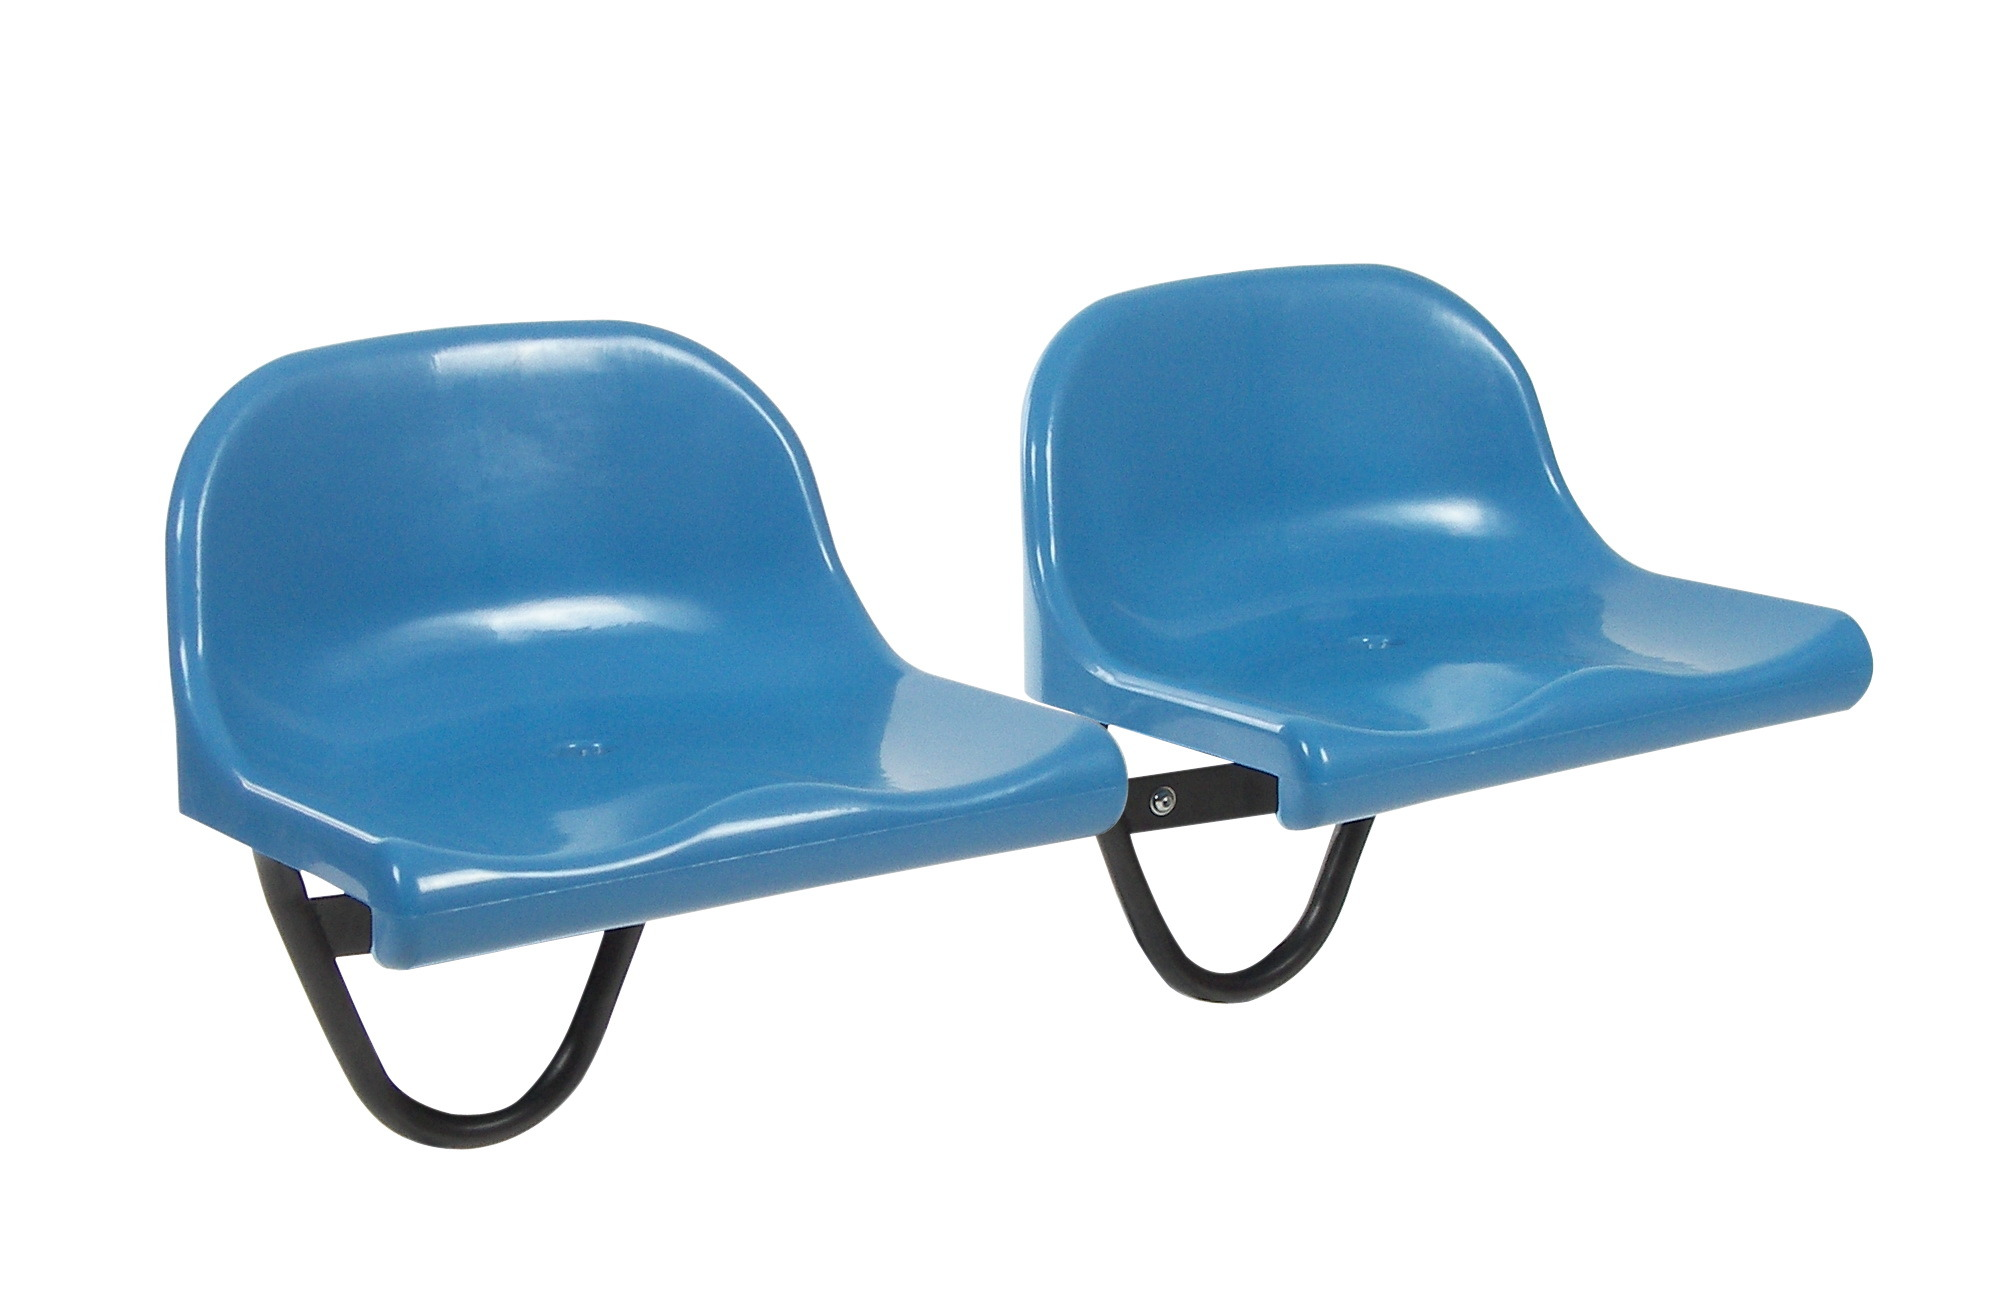 public seating chairs reupholster dining room how much fabric stadium chair gym furniture photos and pictures